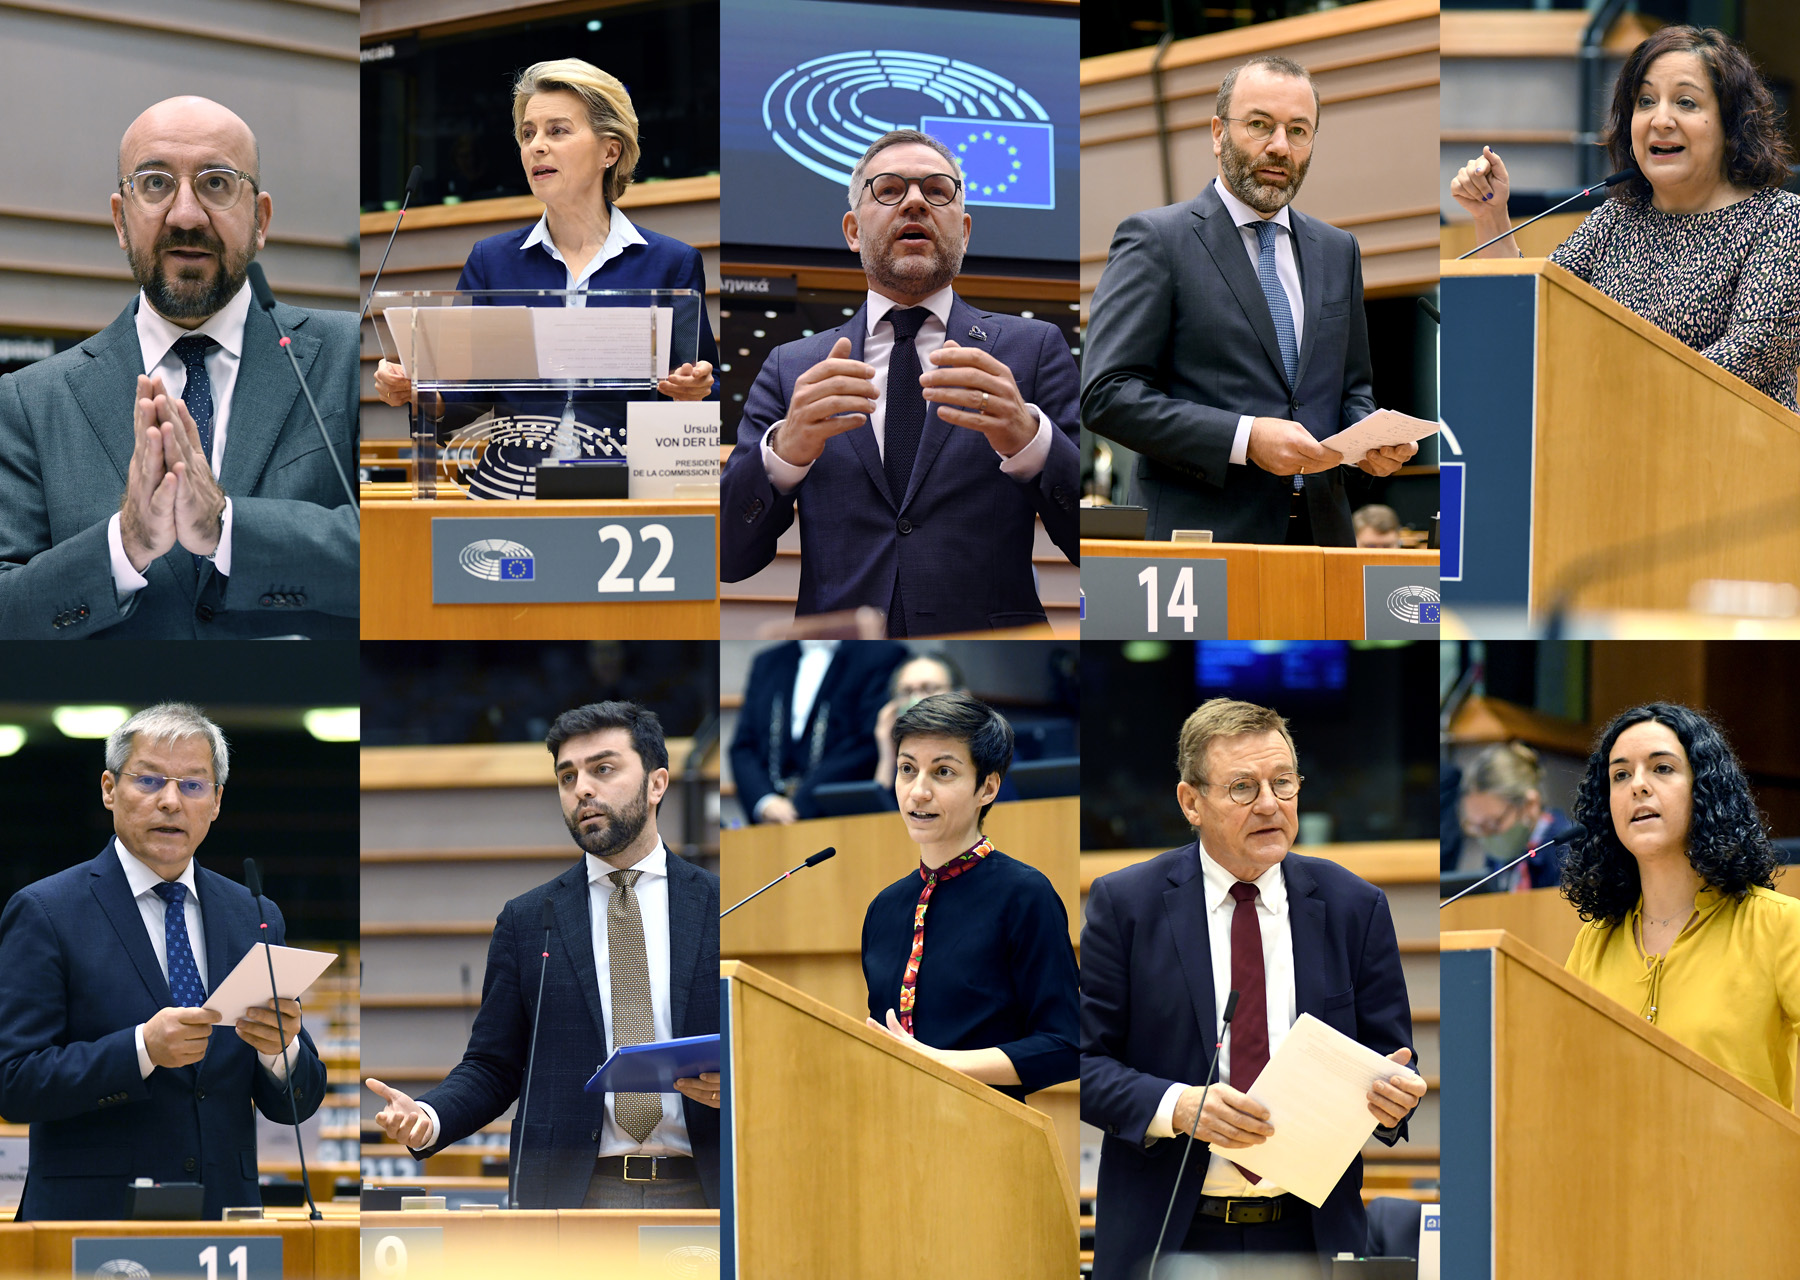 MEPs debate EU summit results on long-term budget, rule of law, climate | News | European Parliament